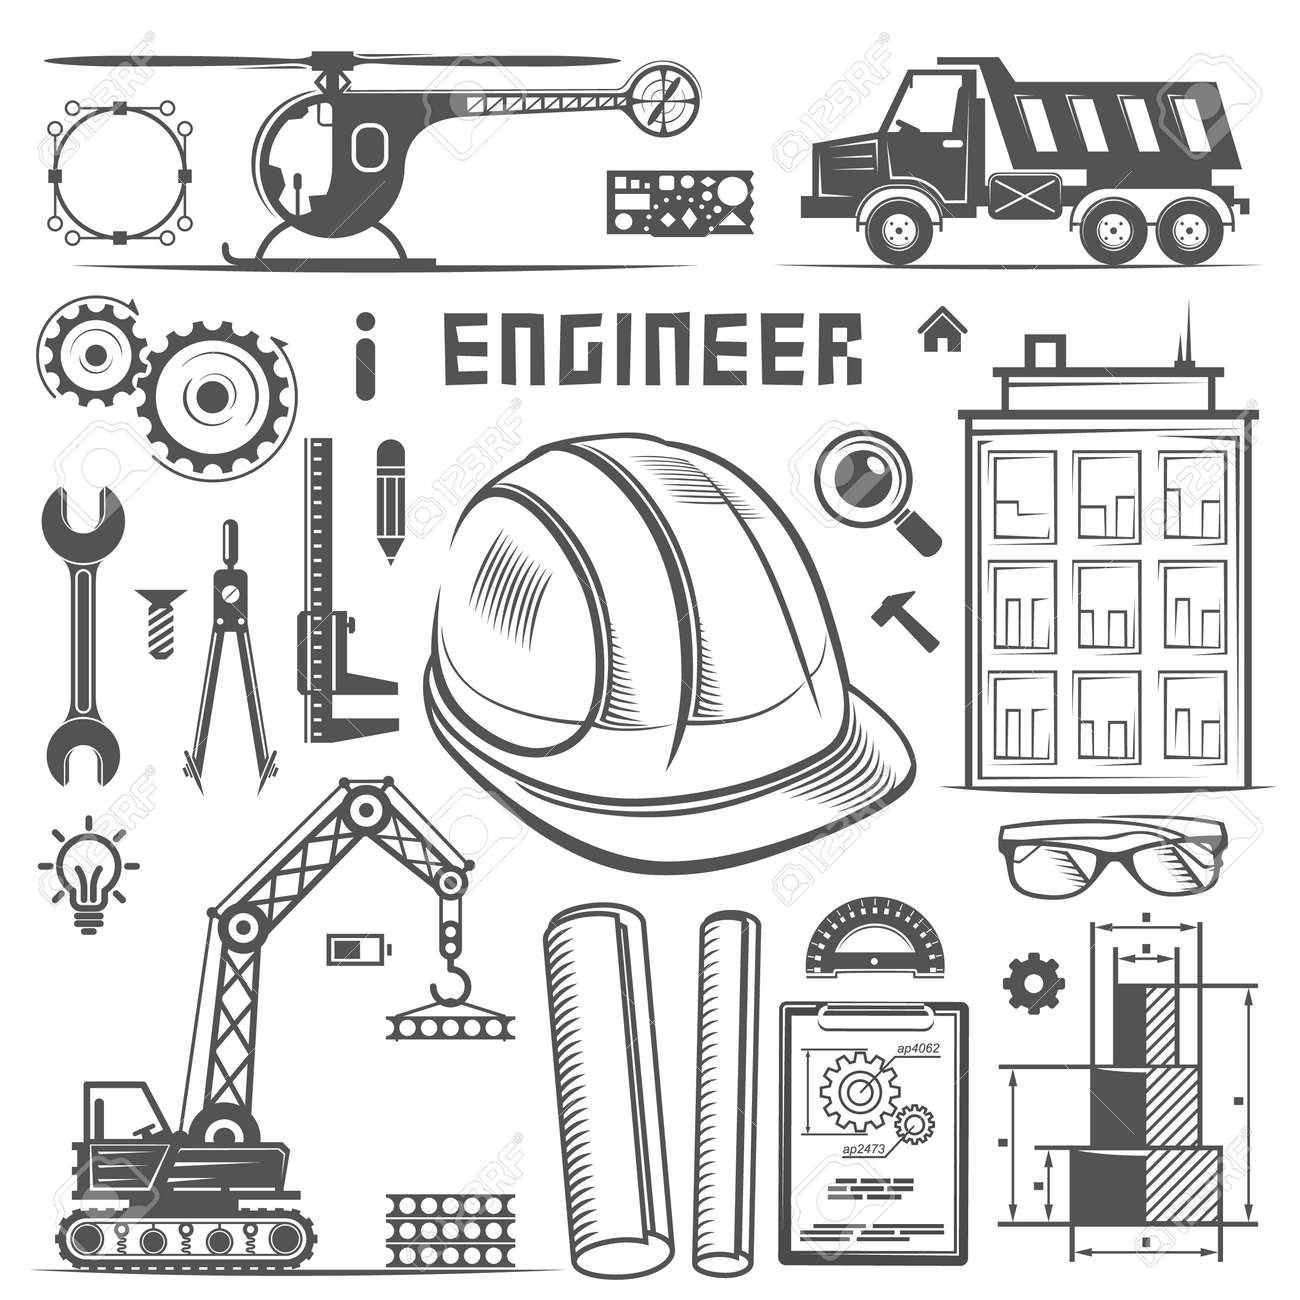 Icons engineer drawing style art vector illustration royalty free